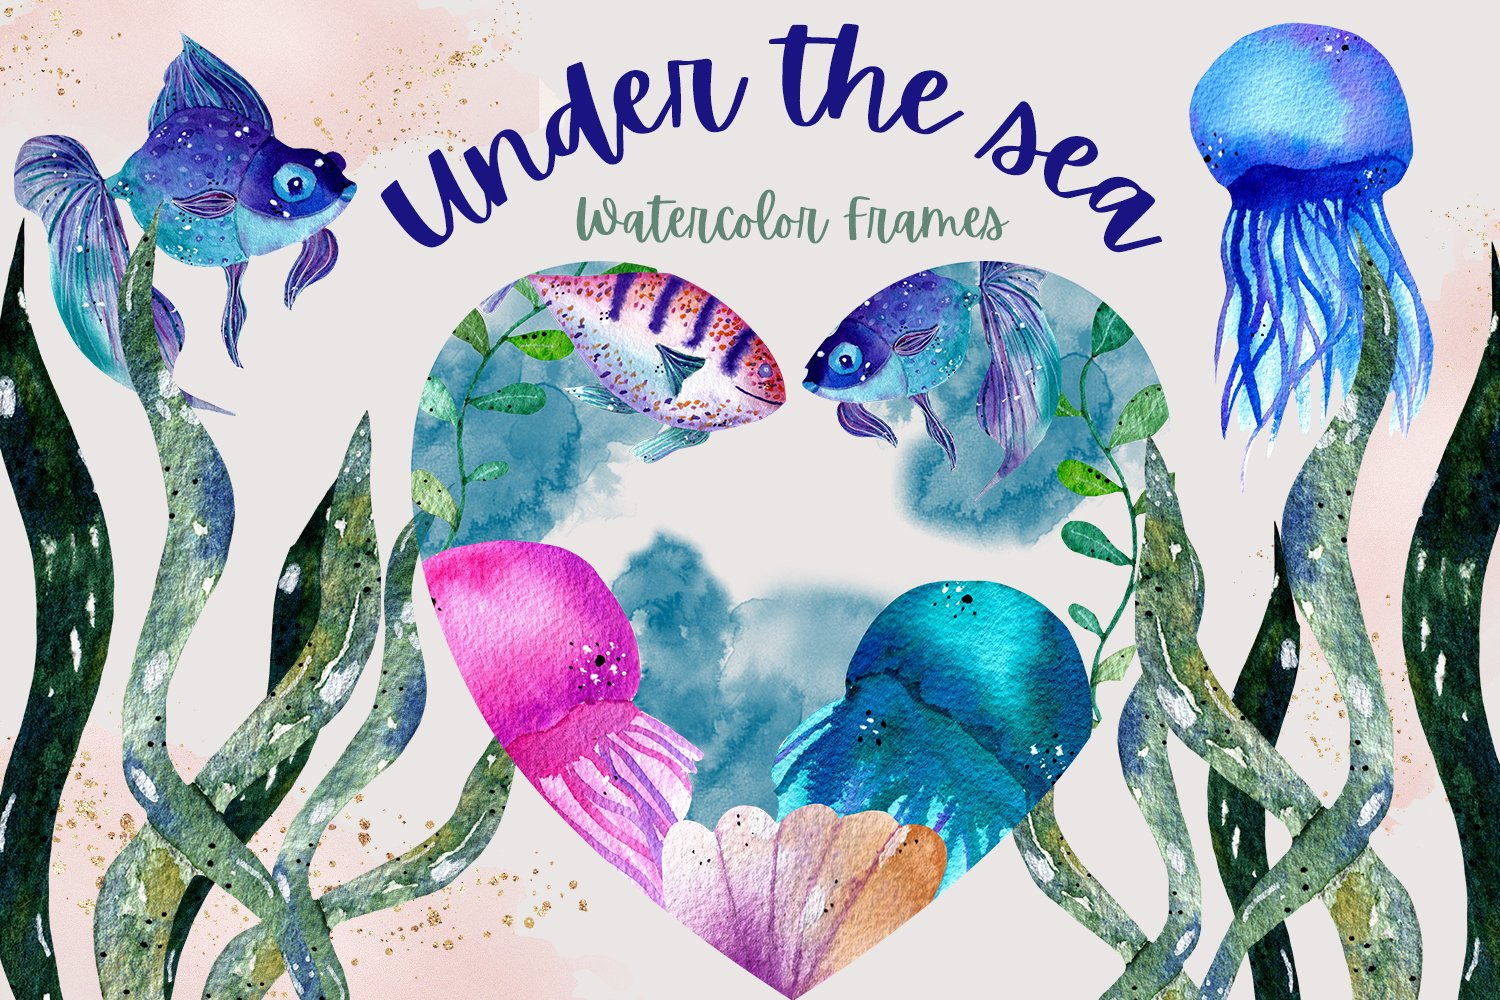 Under the Sea Watercolor Frames example image 1